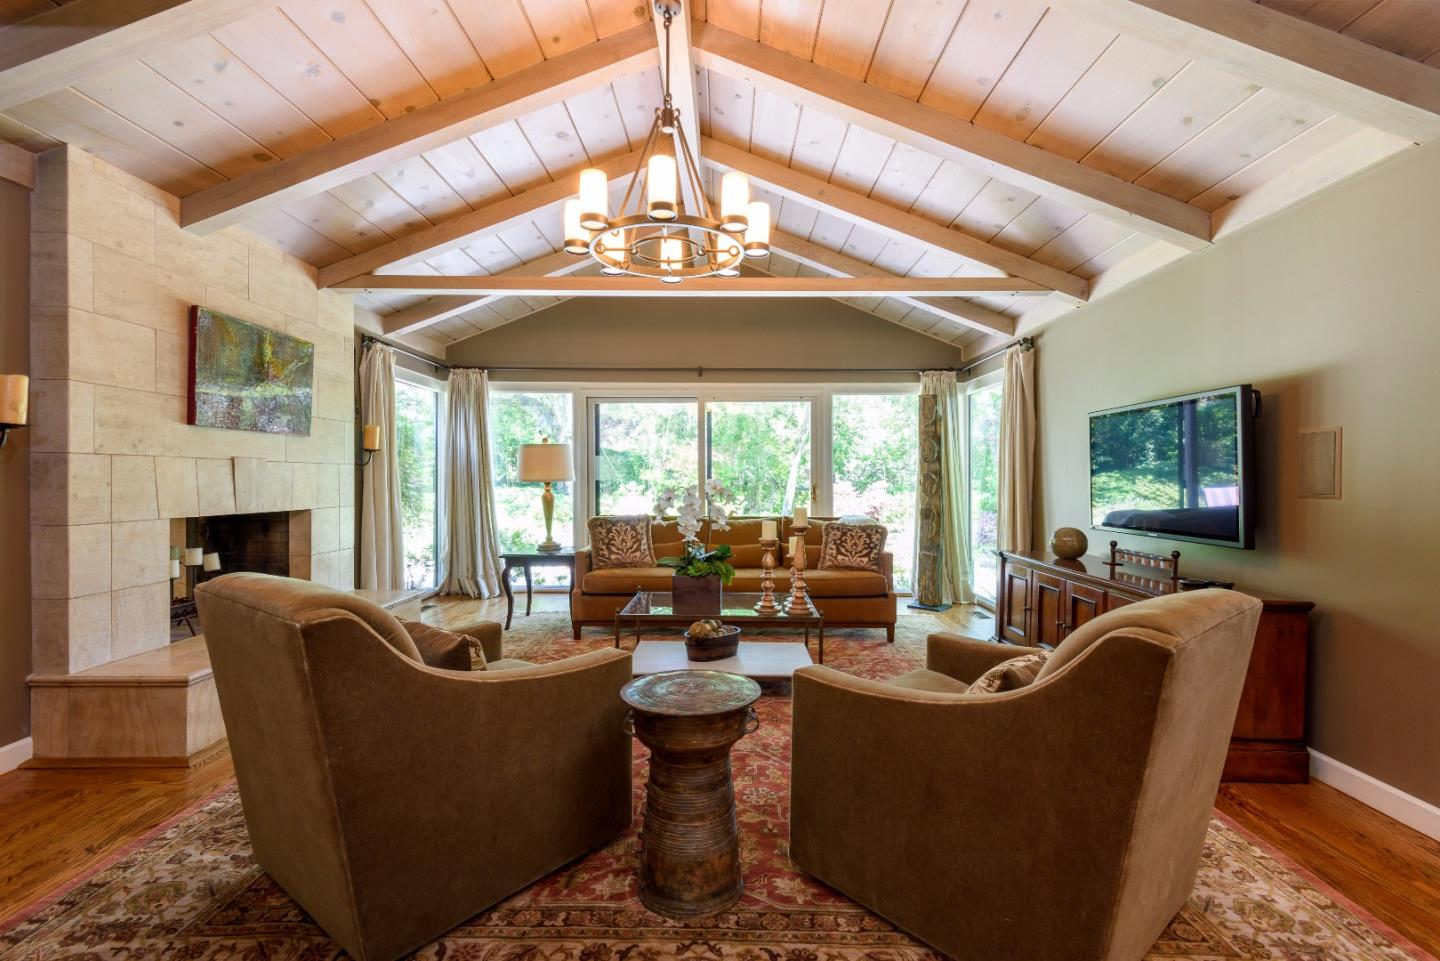 Additional photo for property listing at 1360 Westridge  Portola Valley, Kalifornien 94028 Vereinigte Staaten